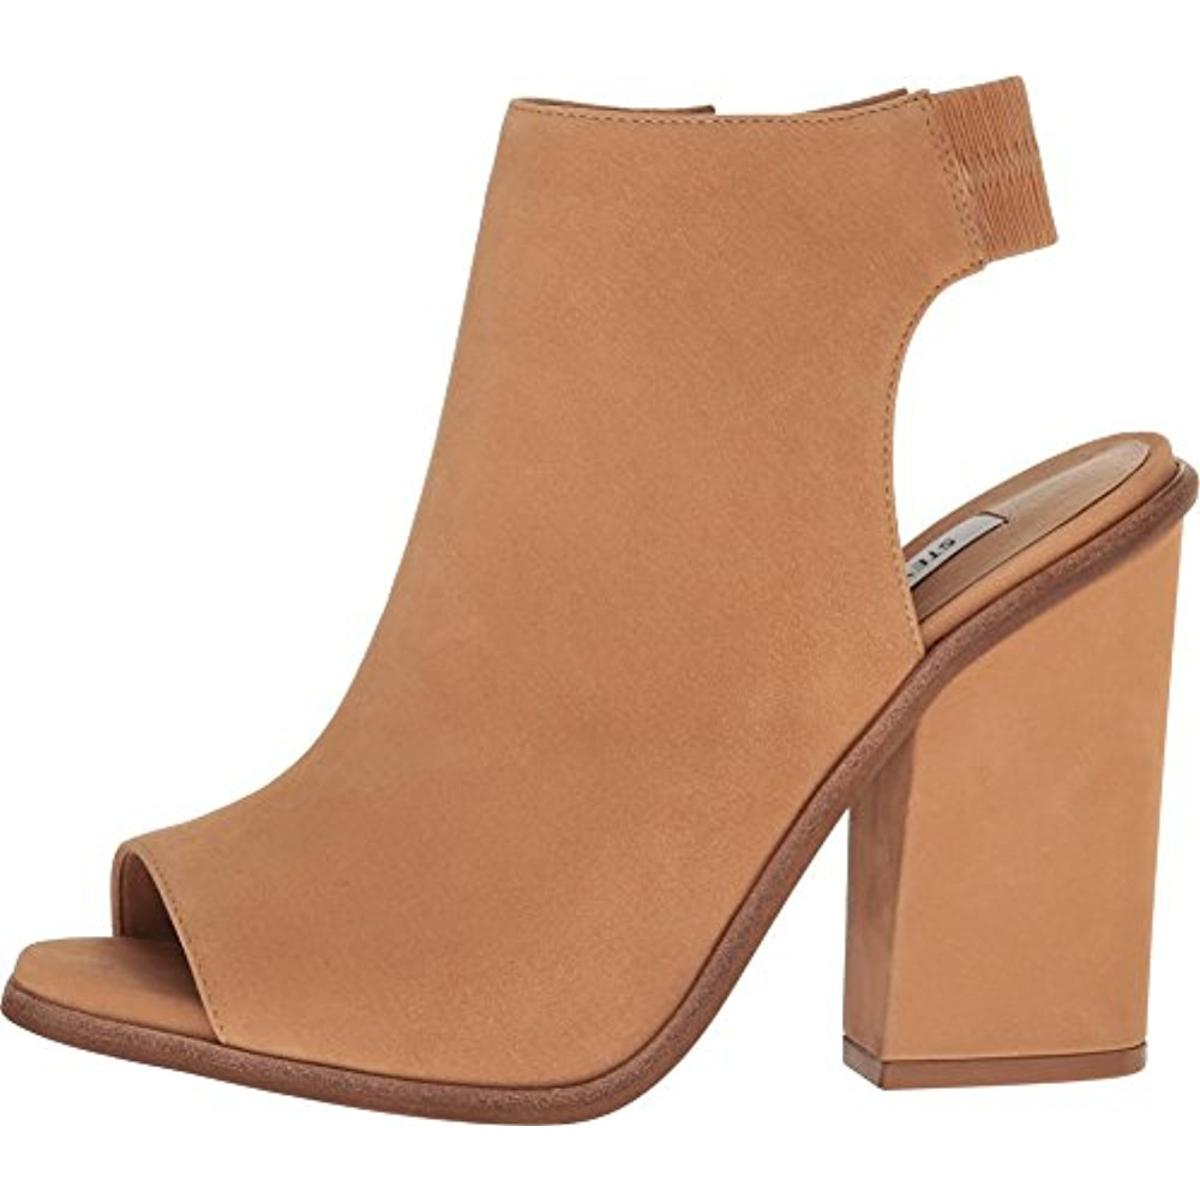 5e6f2415ee9 Details about Steve Madden Womens Valencia Open Toe Booties Dress Sandals  Shoes BHFO 4273